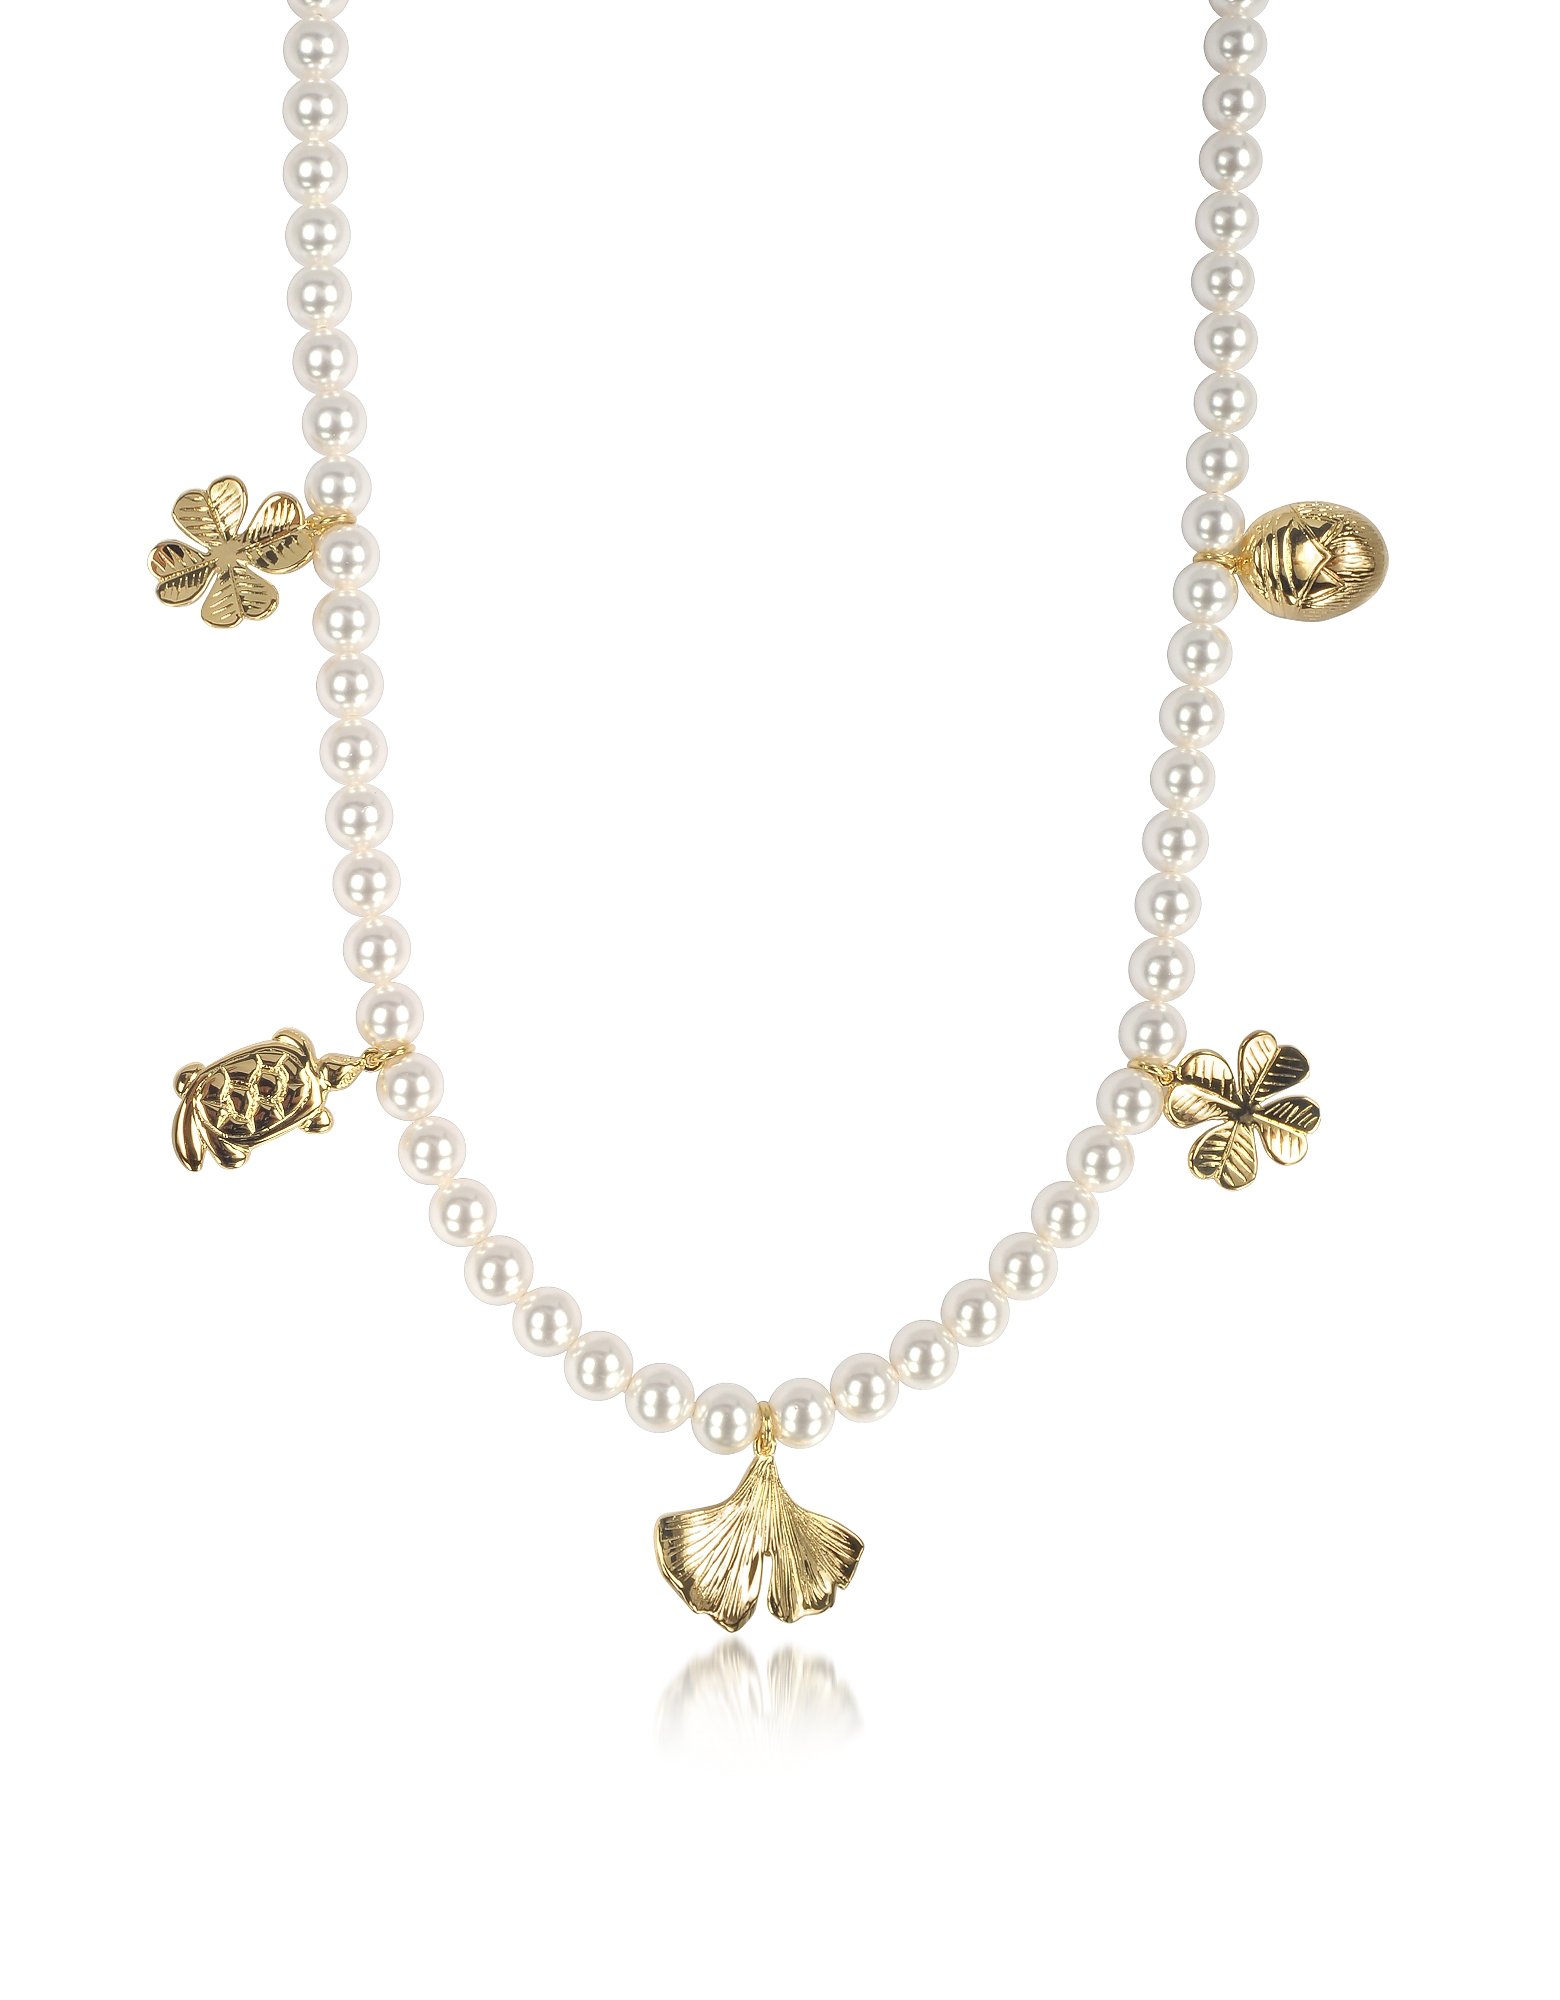 Cheyne Walk Long Necklace w/Glass Pearls and 18K Gold-Plated Charms